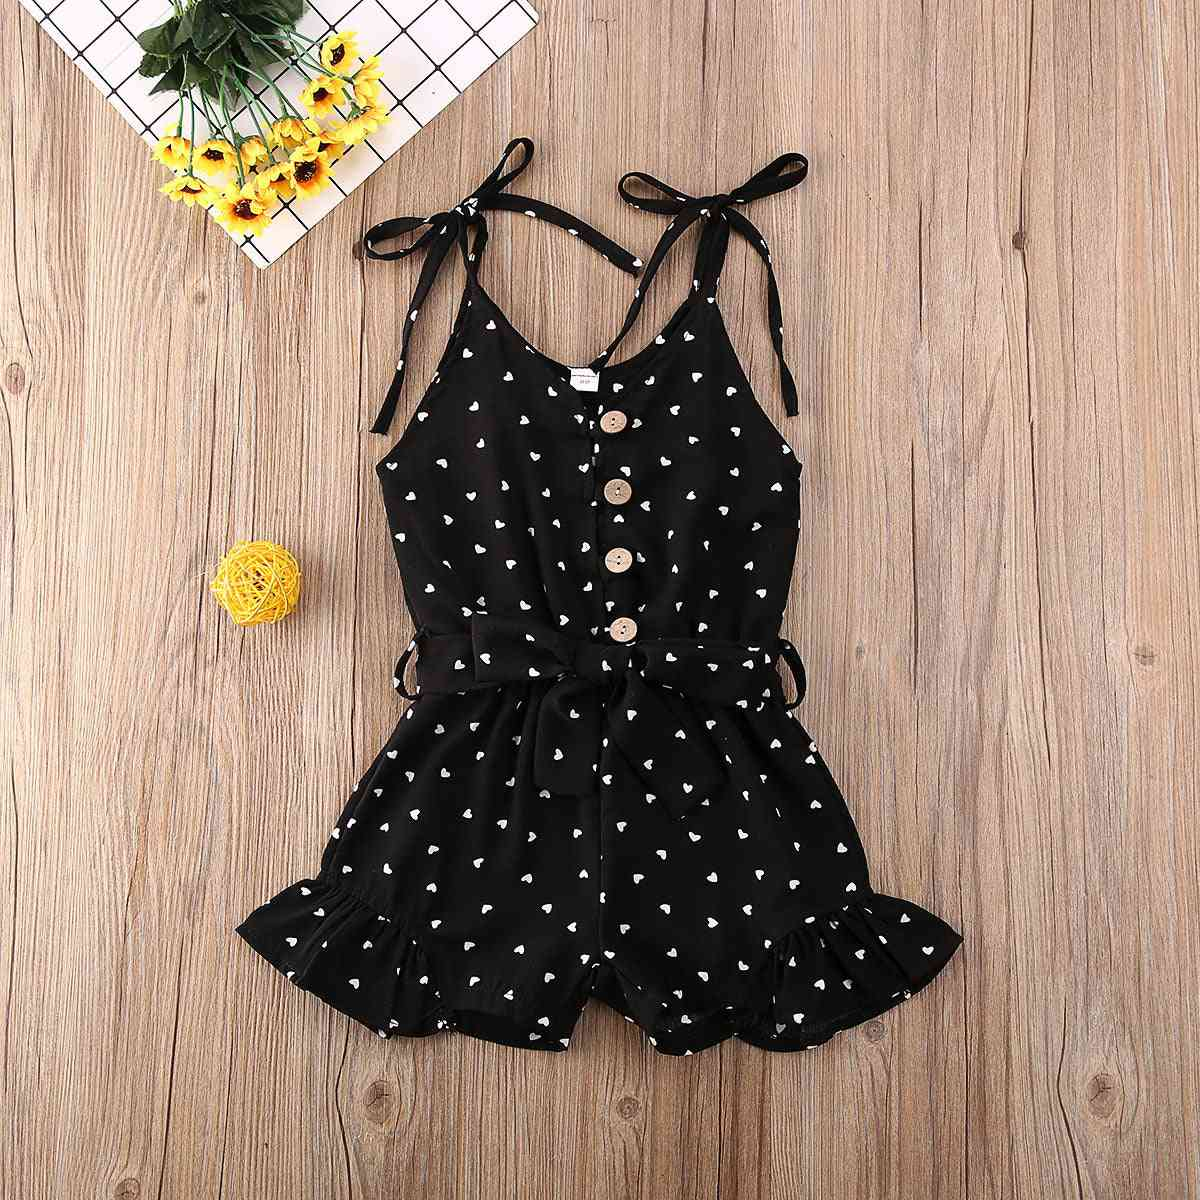 Toddler Baby Girl Clothes Love Peach Heart Print Strap Romper Jumpsuit -outfit Cotton Clothes